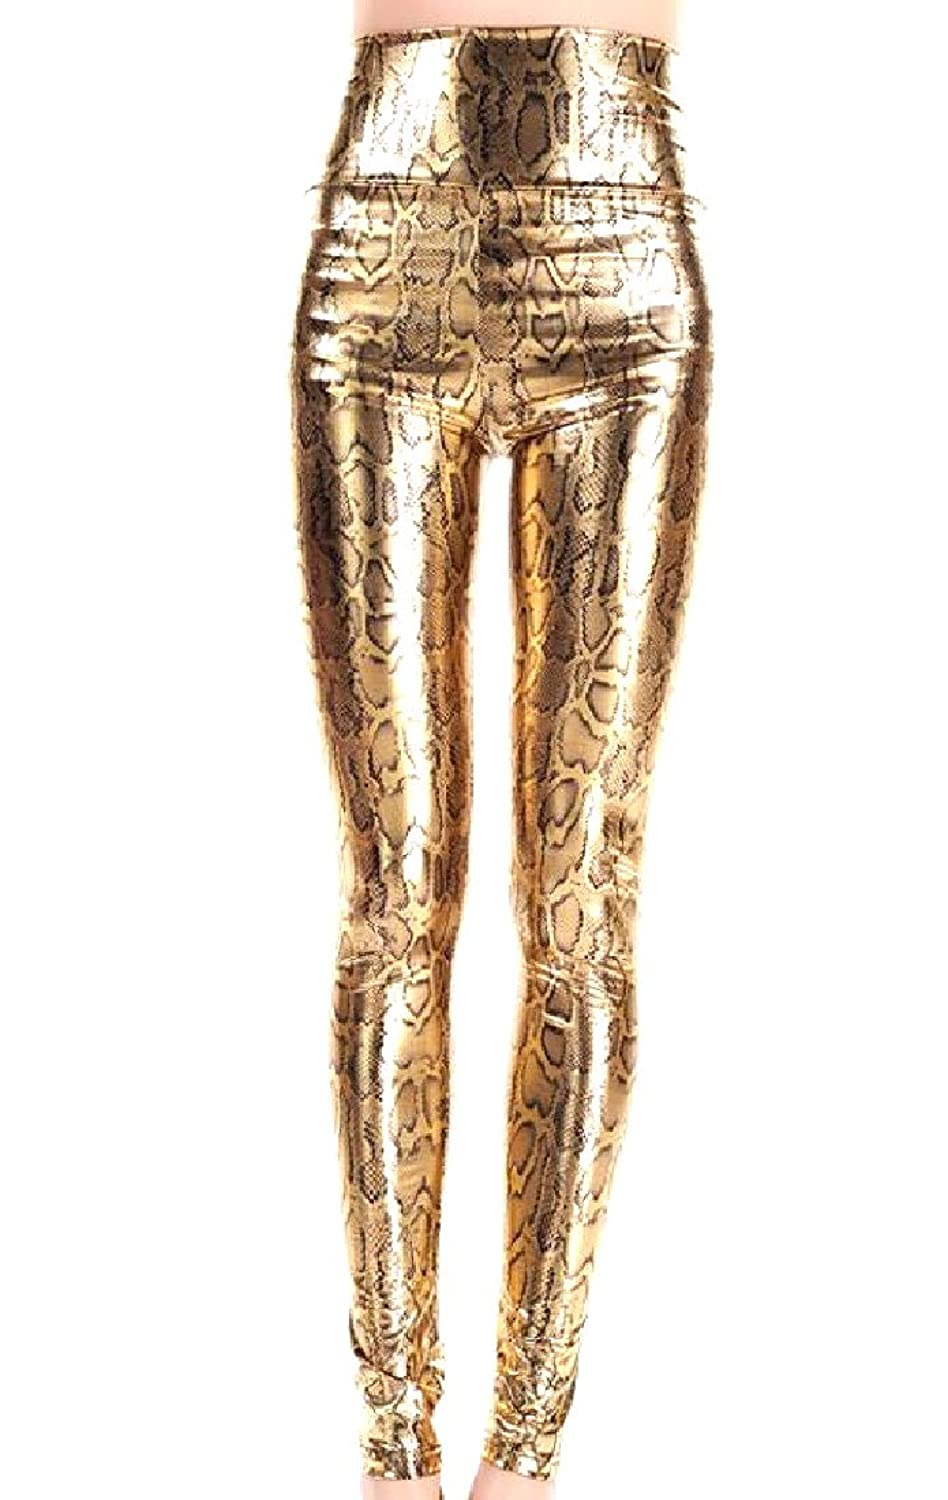 61b797b98eda8 Abetteric Women's Satin Snakeskin Grain Compression Flexible Jeggings